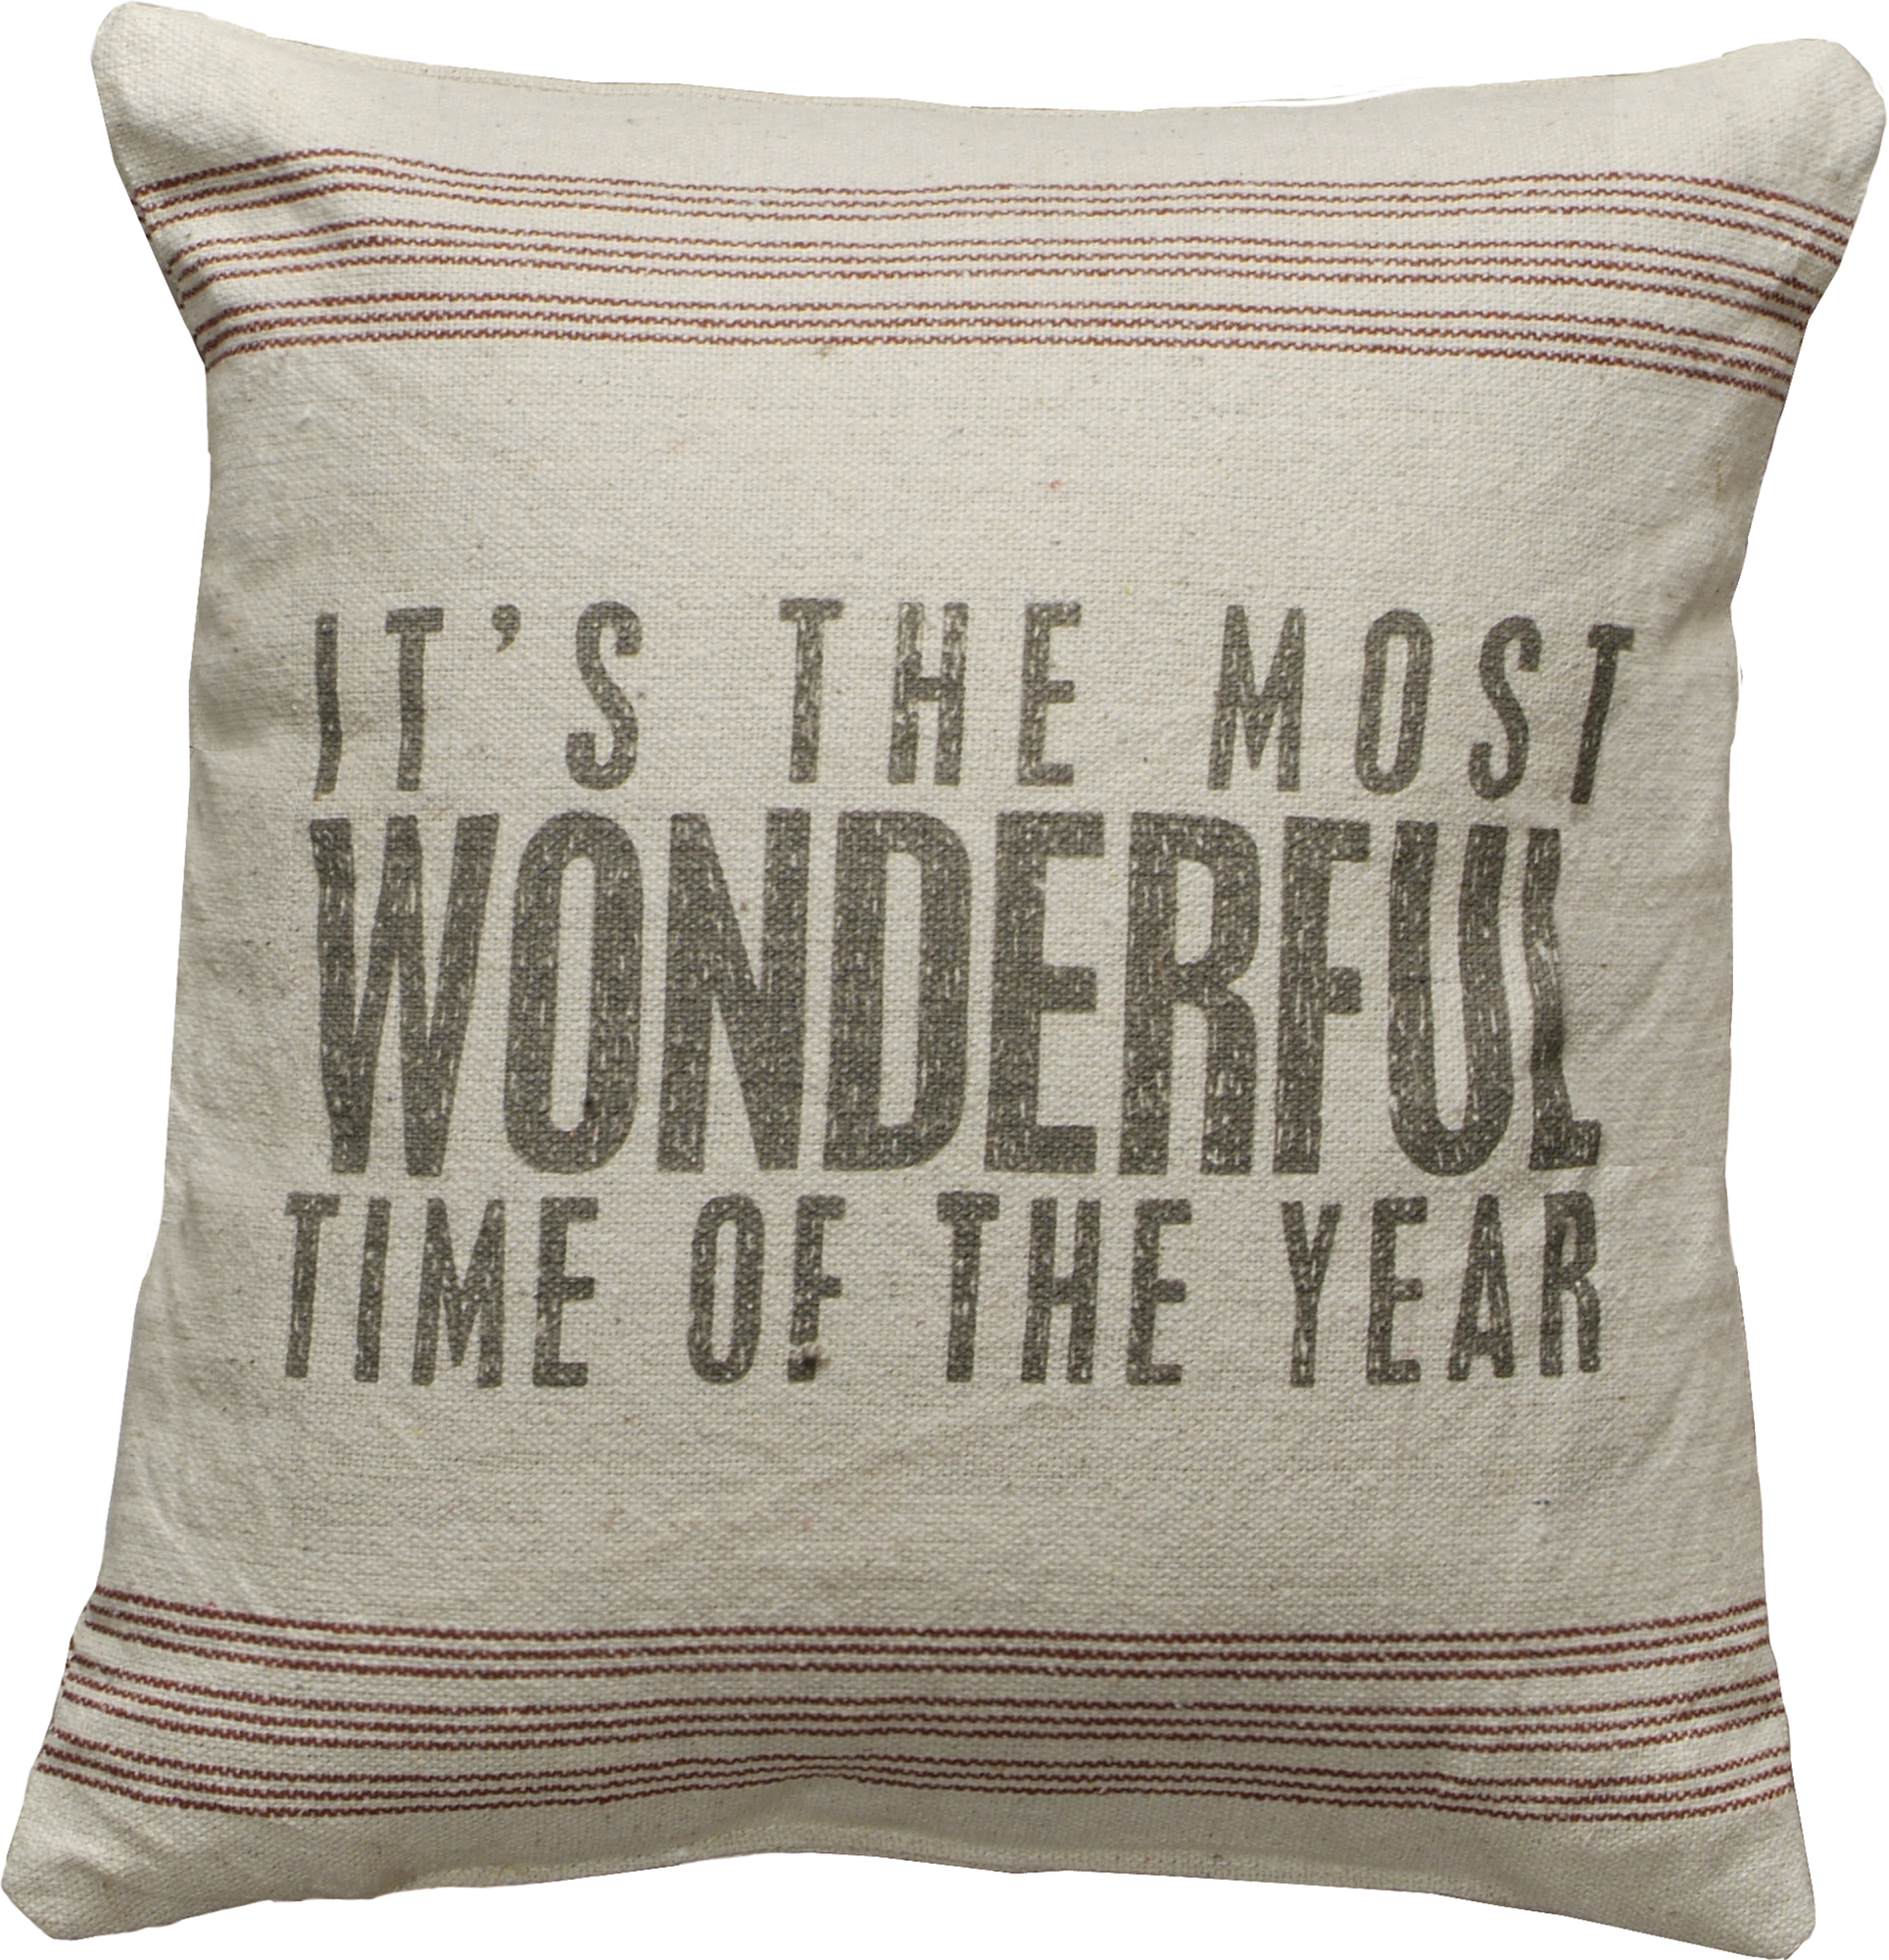 Most Wonderful Pillow $26